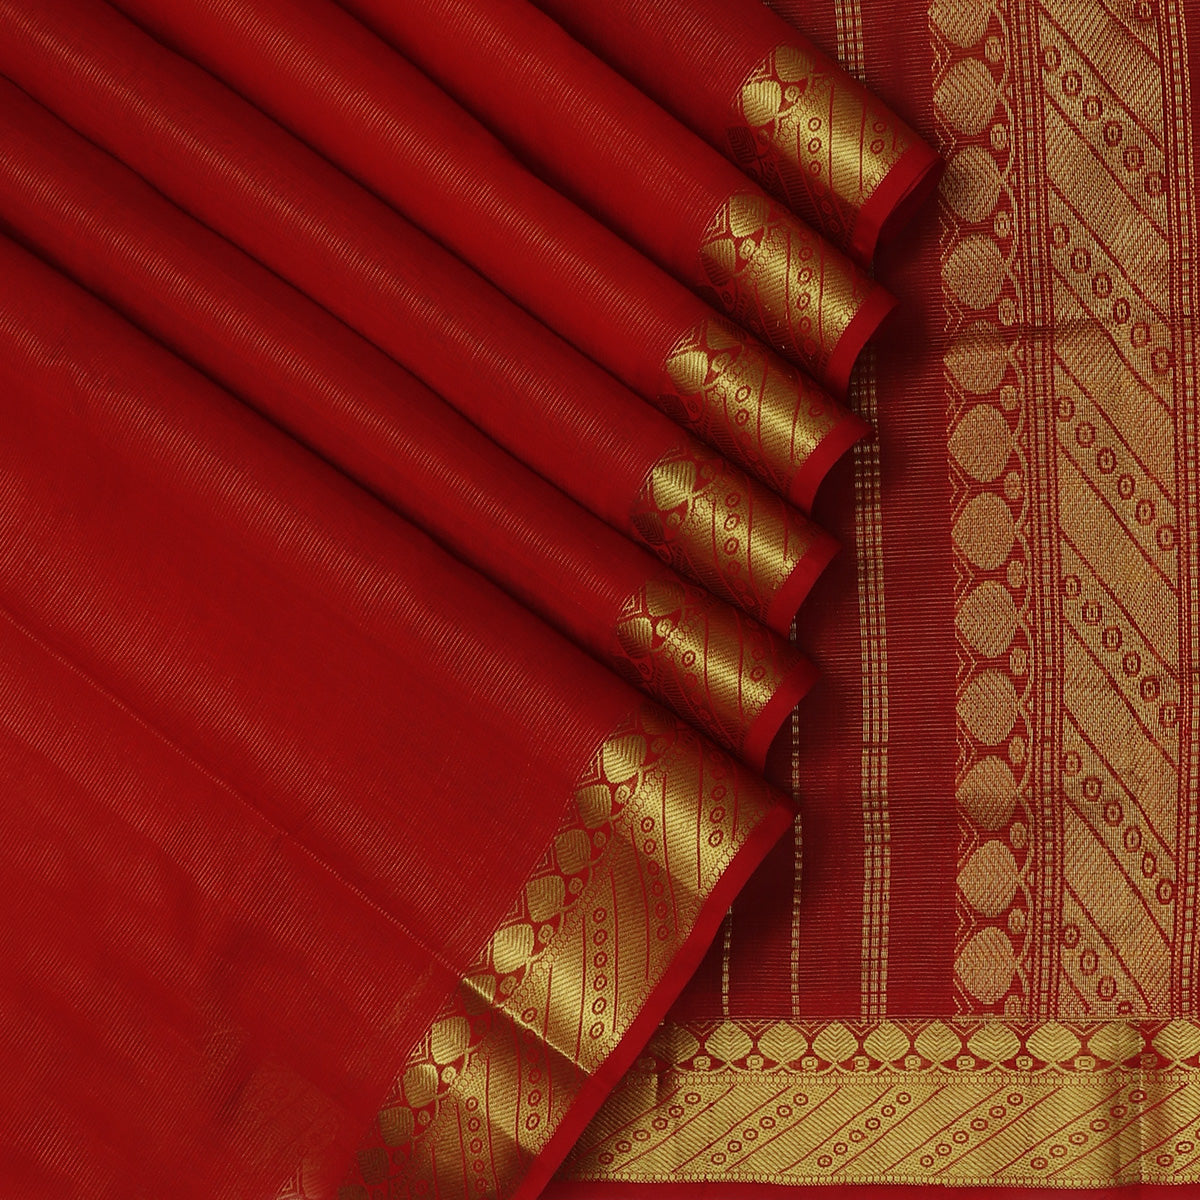 Silk Cotton Saree-Vairaoosi Red with Buds Zari border